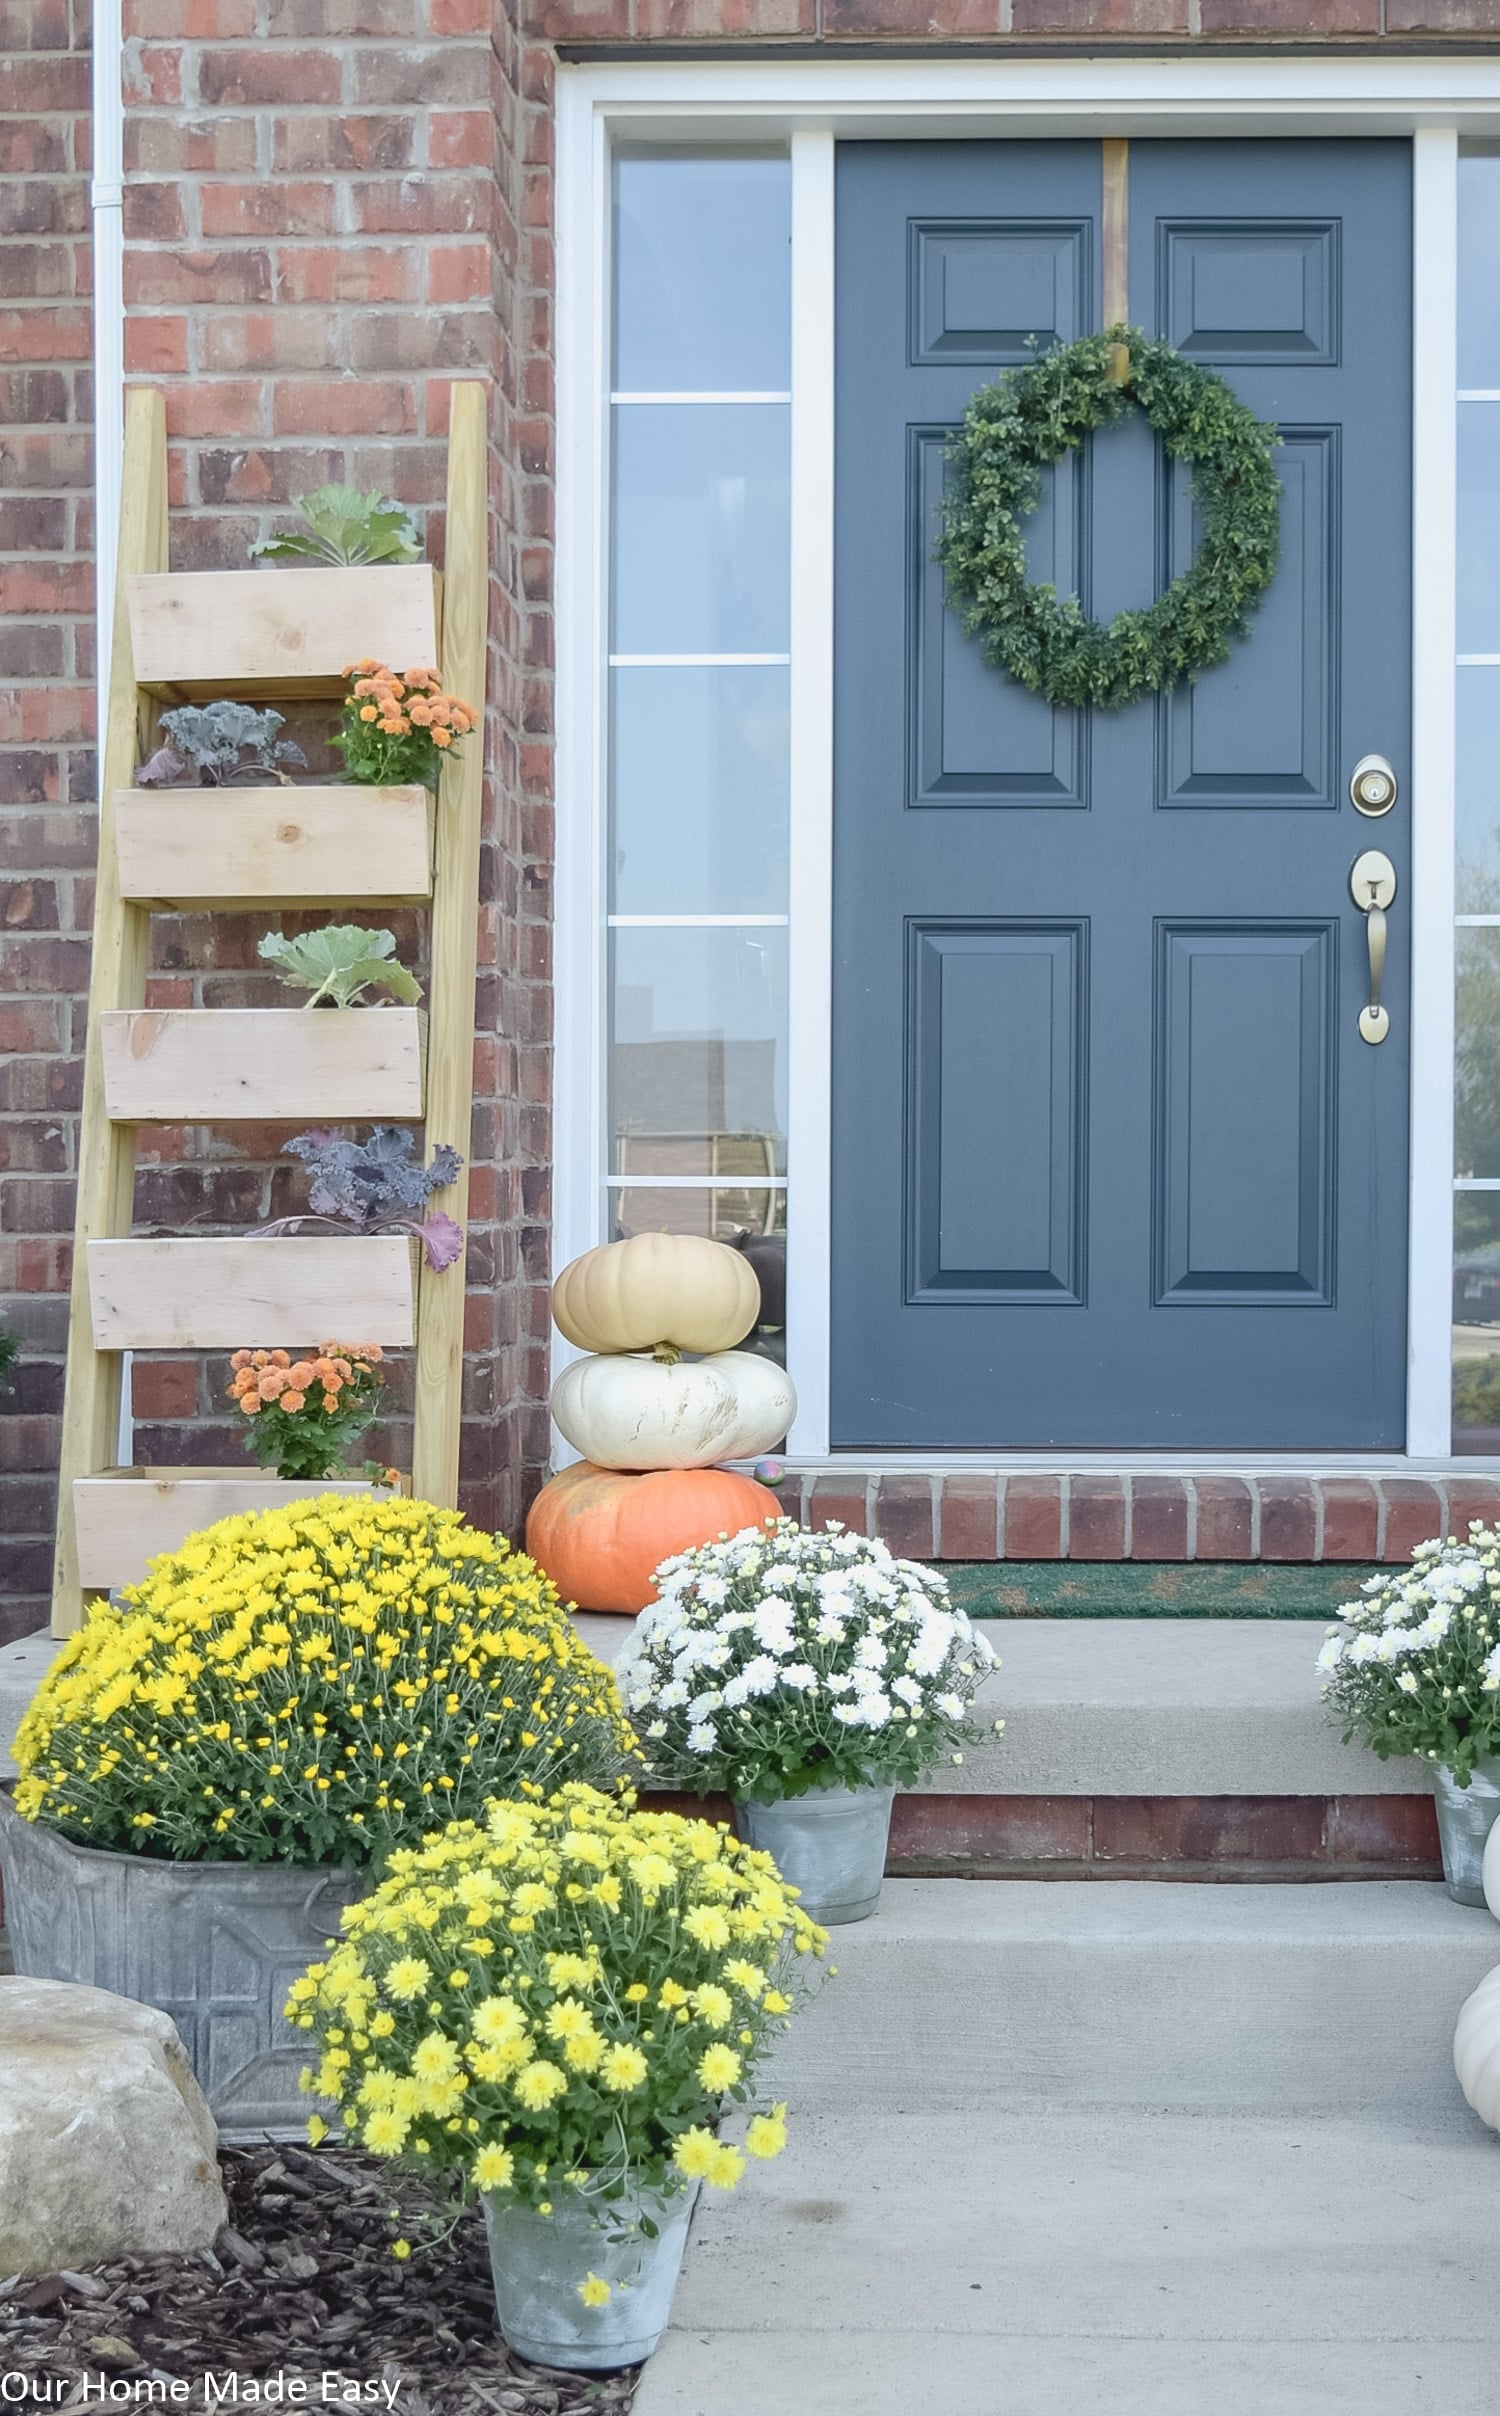 bright colored potted mums are an easy way to add a fresh, fall touch to your front porch